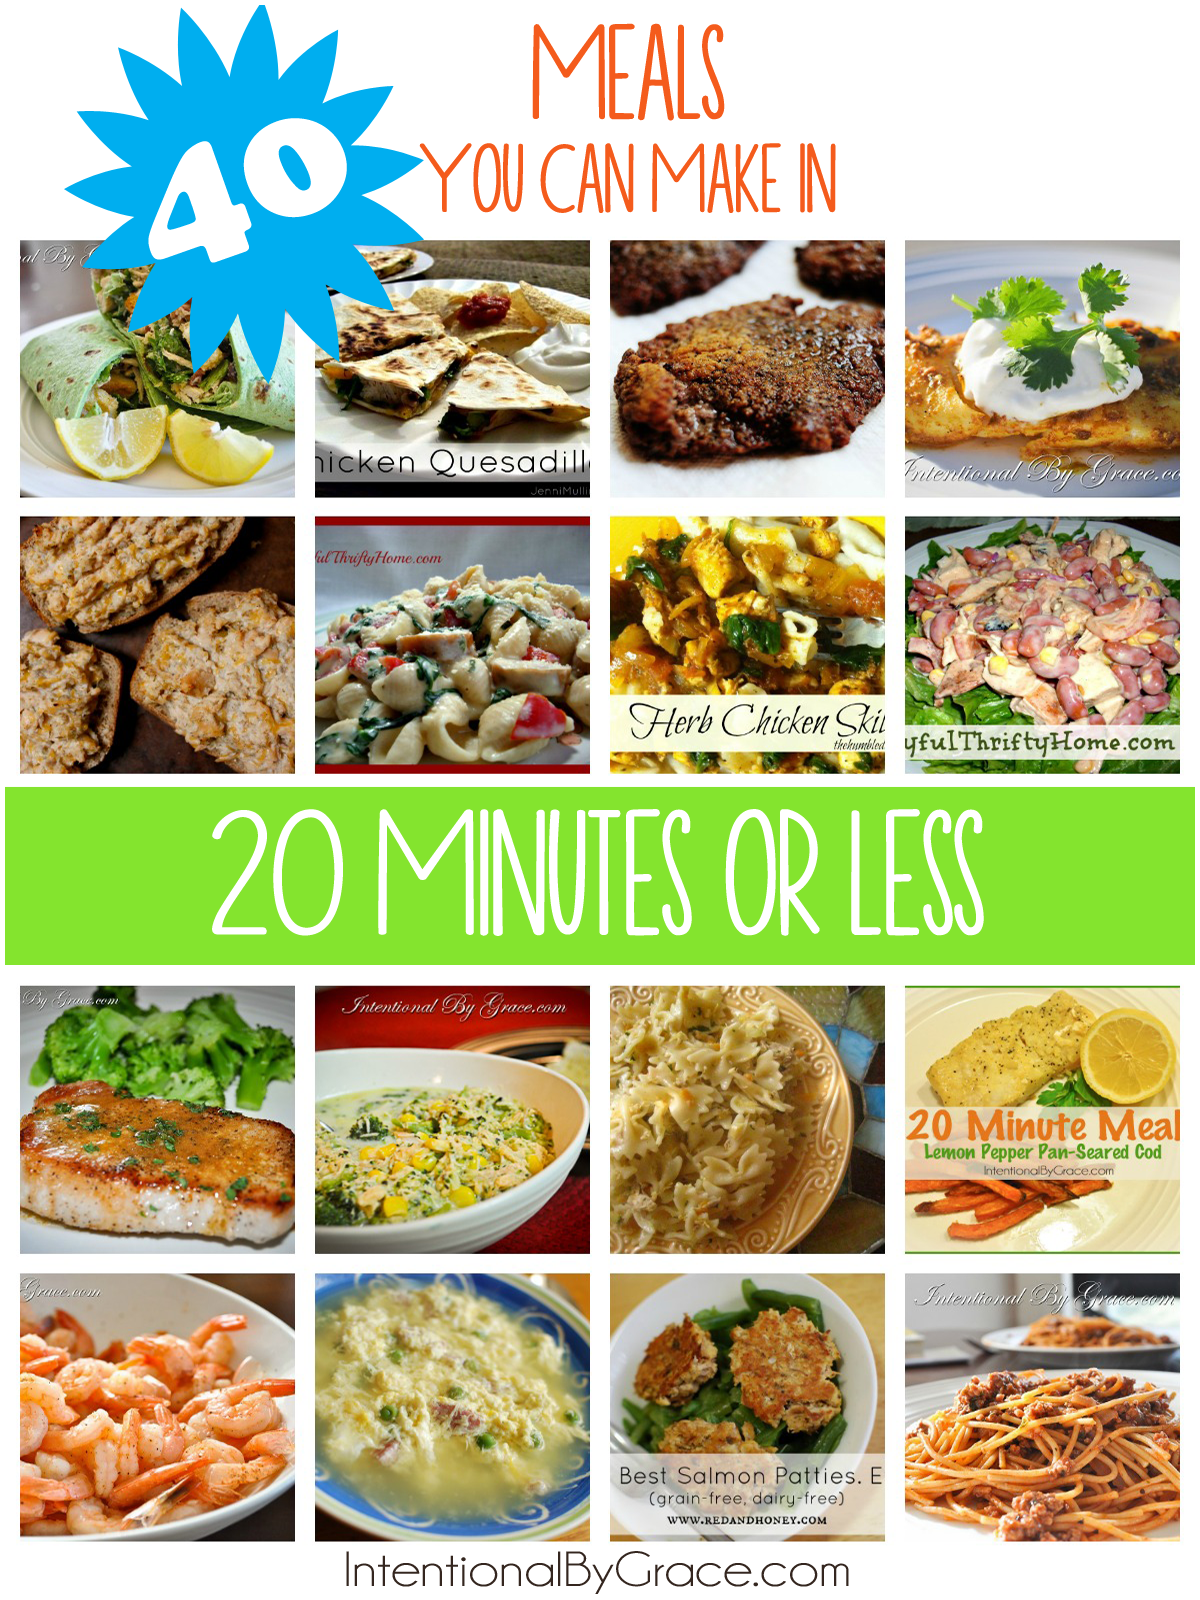 40 meals you can make in 20 minutes or less_edited-1